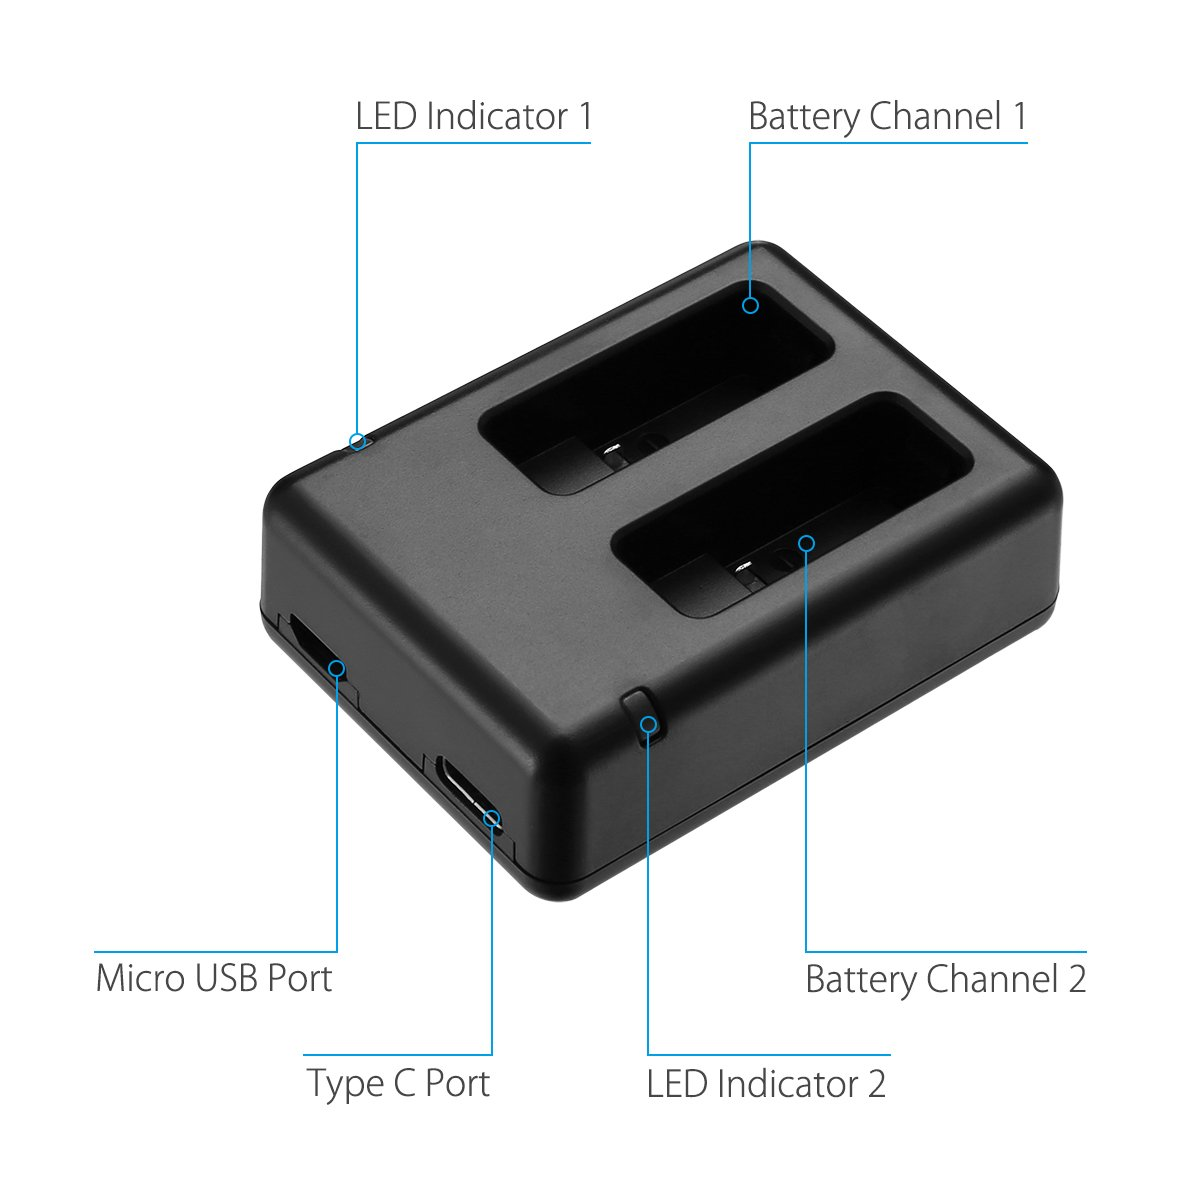 HERO5 Black Powerextra Dual Battery Charger with Micro USB Cable for GoPro HERO7 Black GoPro HERO6 Black GoPro HERO5